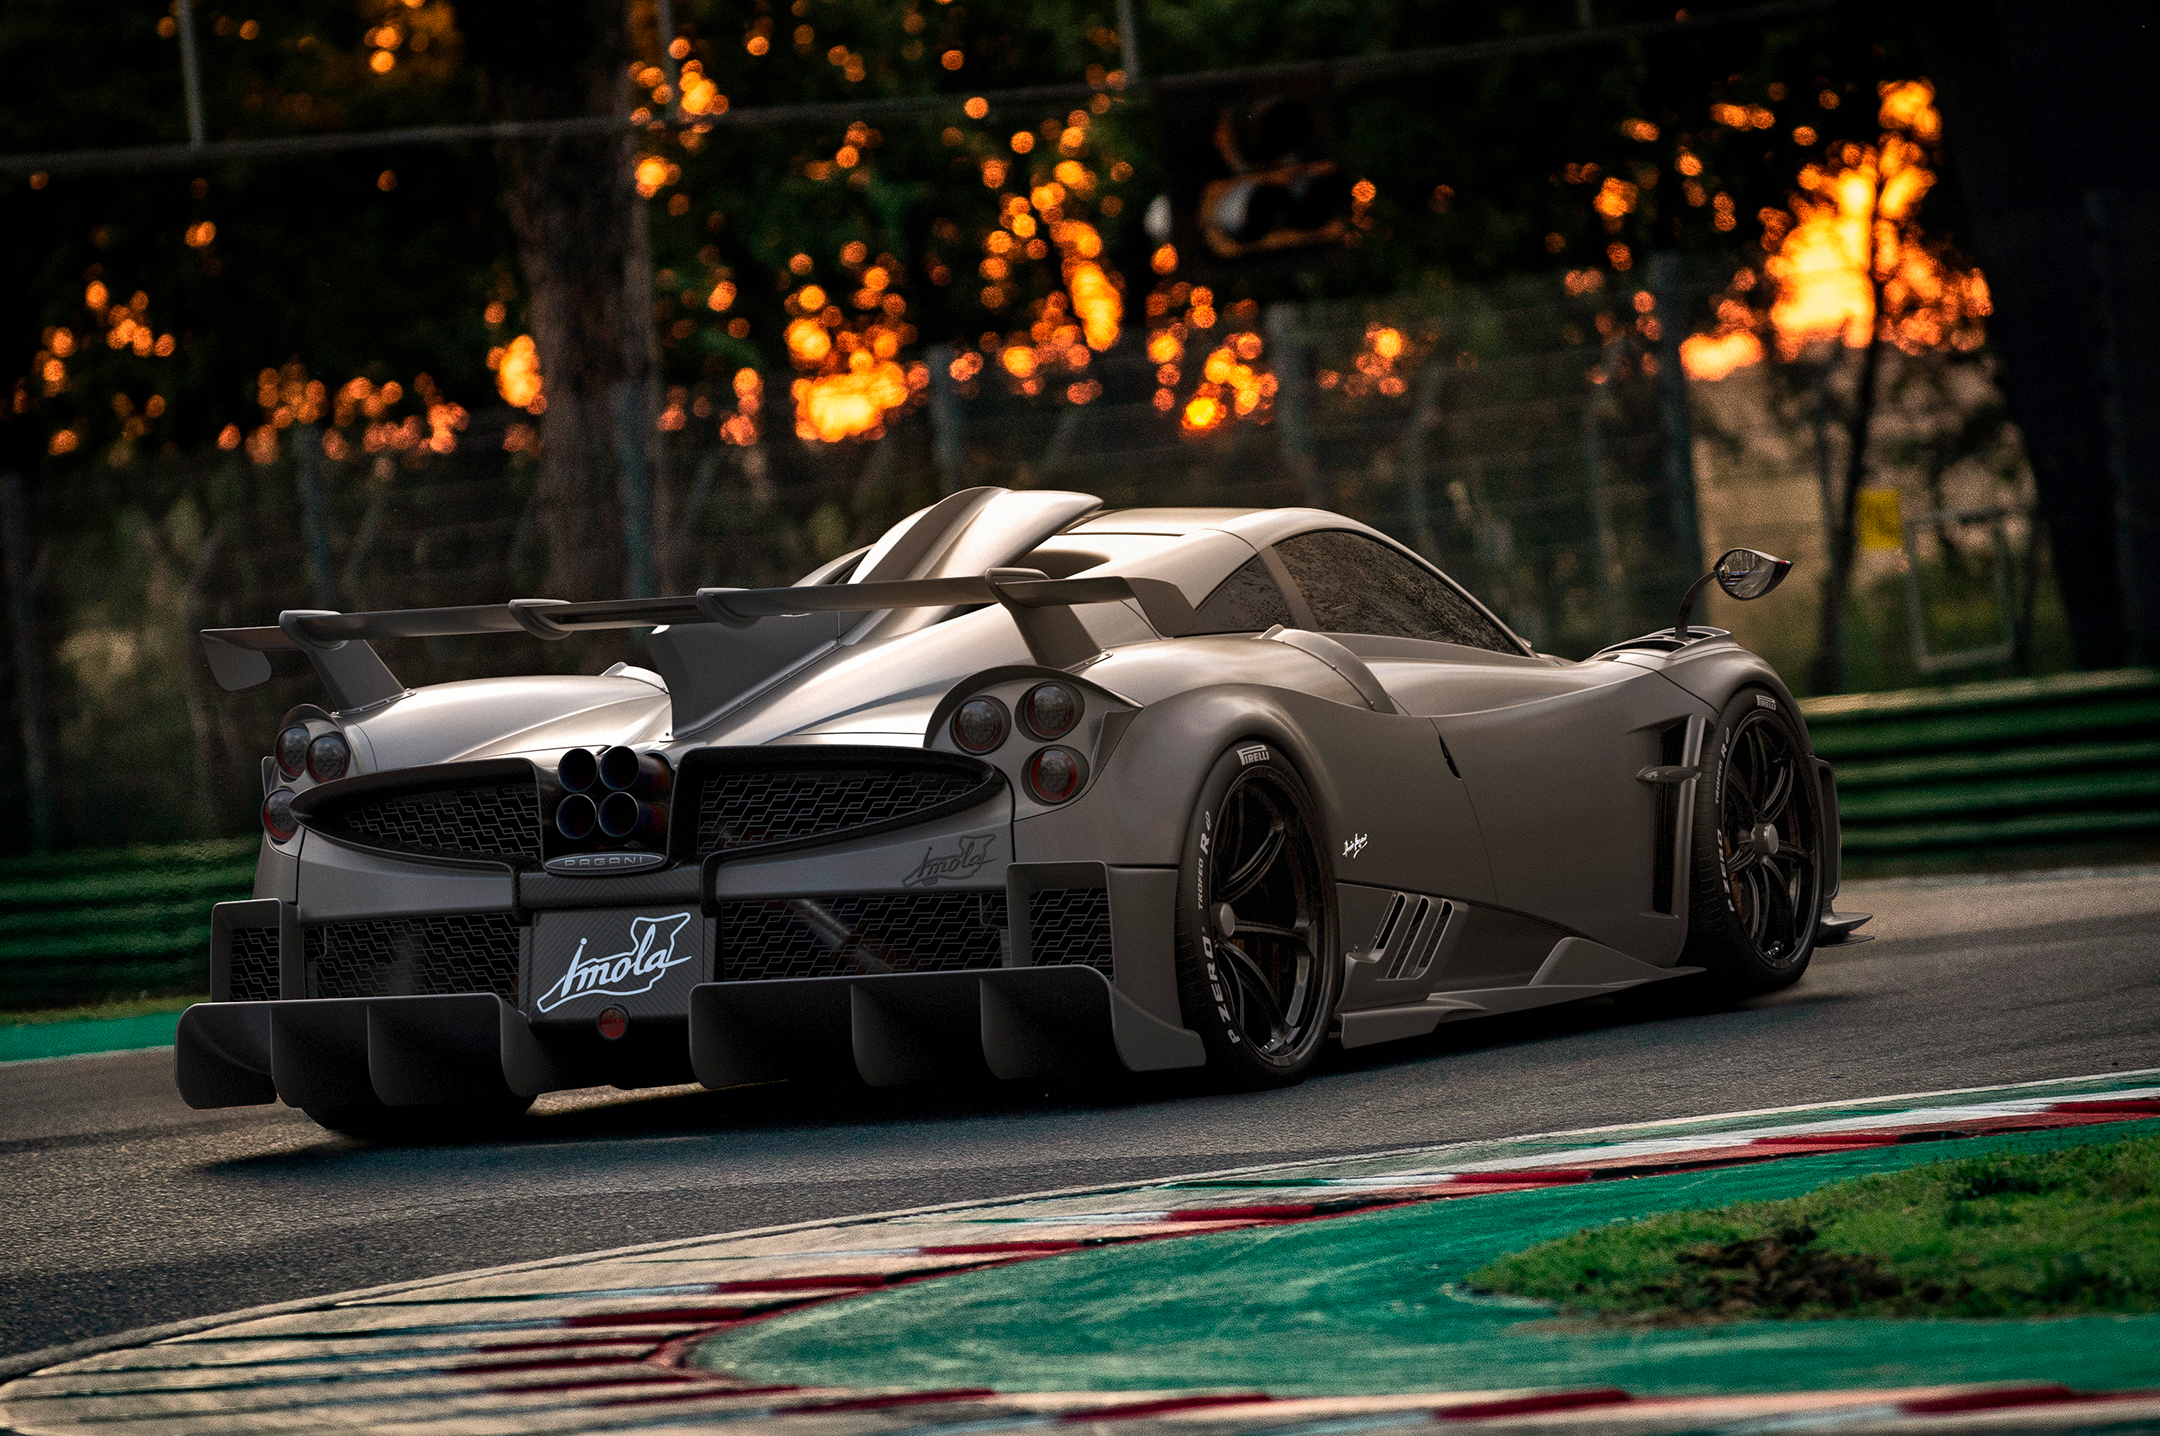 Pagani Imola - 2020 - rear side / arrière - on track / sur circuit / in pista